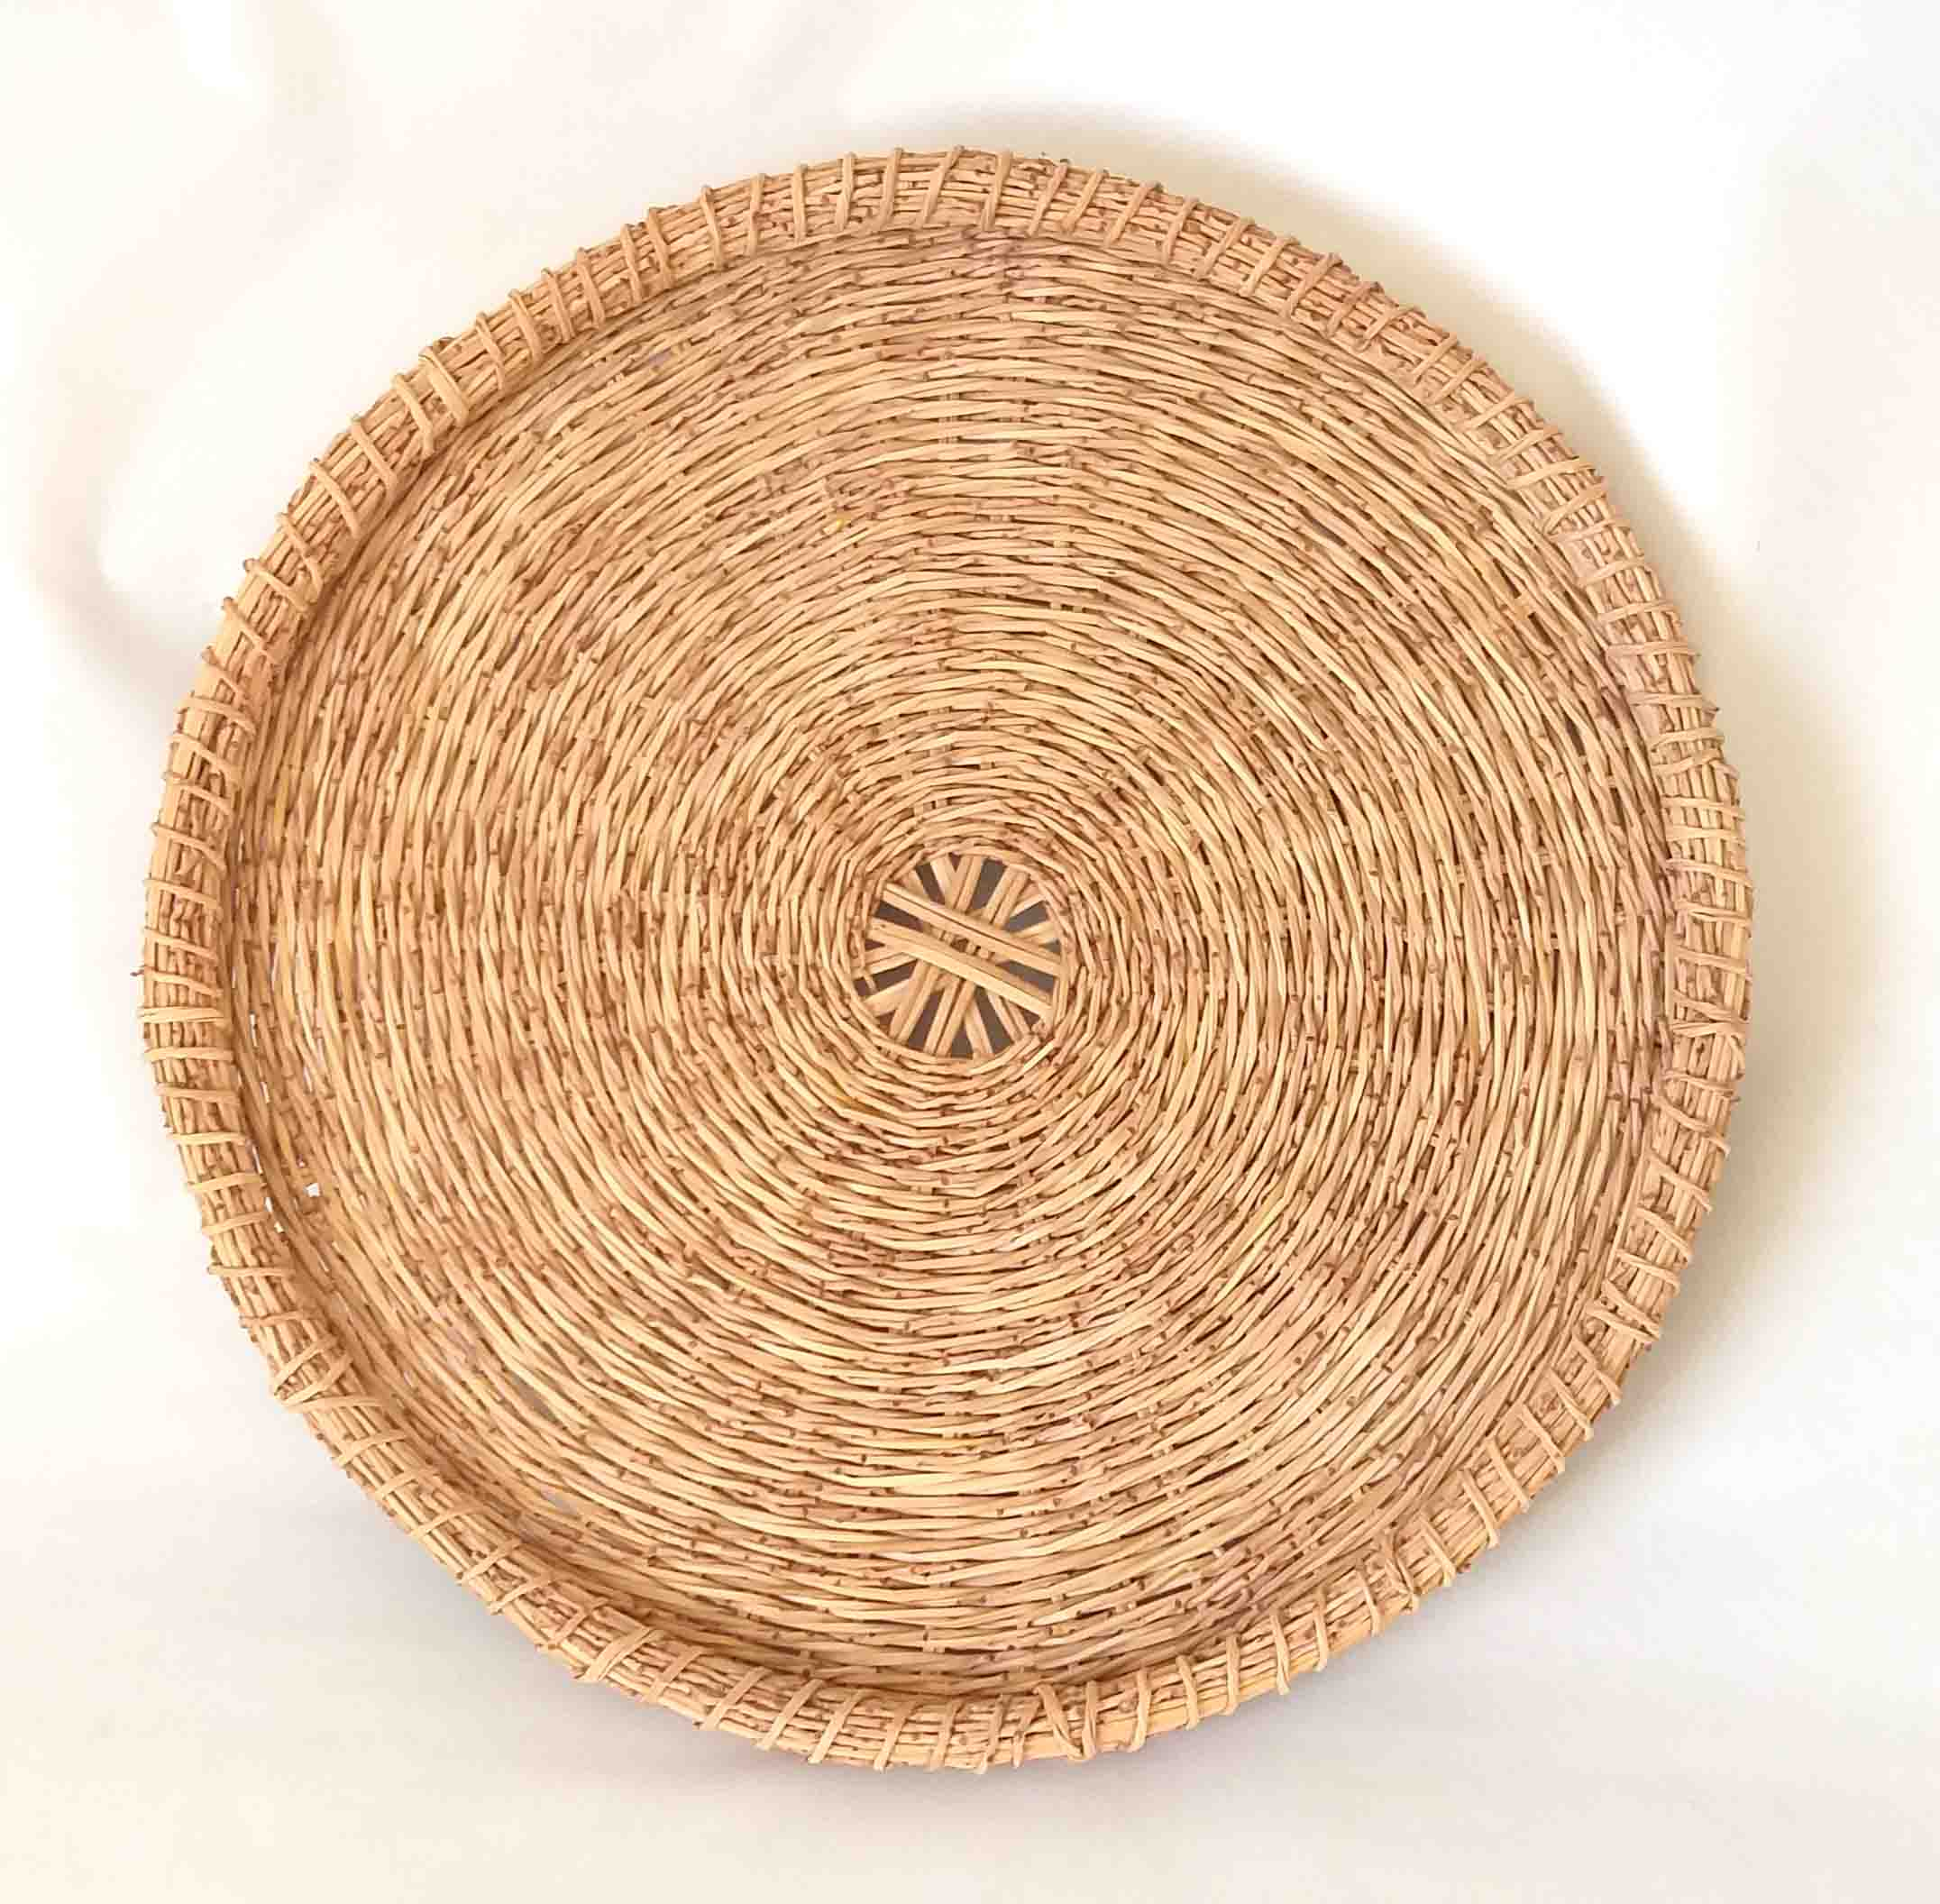 Tray Plate Wall Decor Made Of Palm Branches Israel Basketry